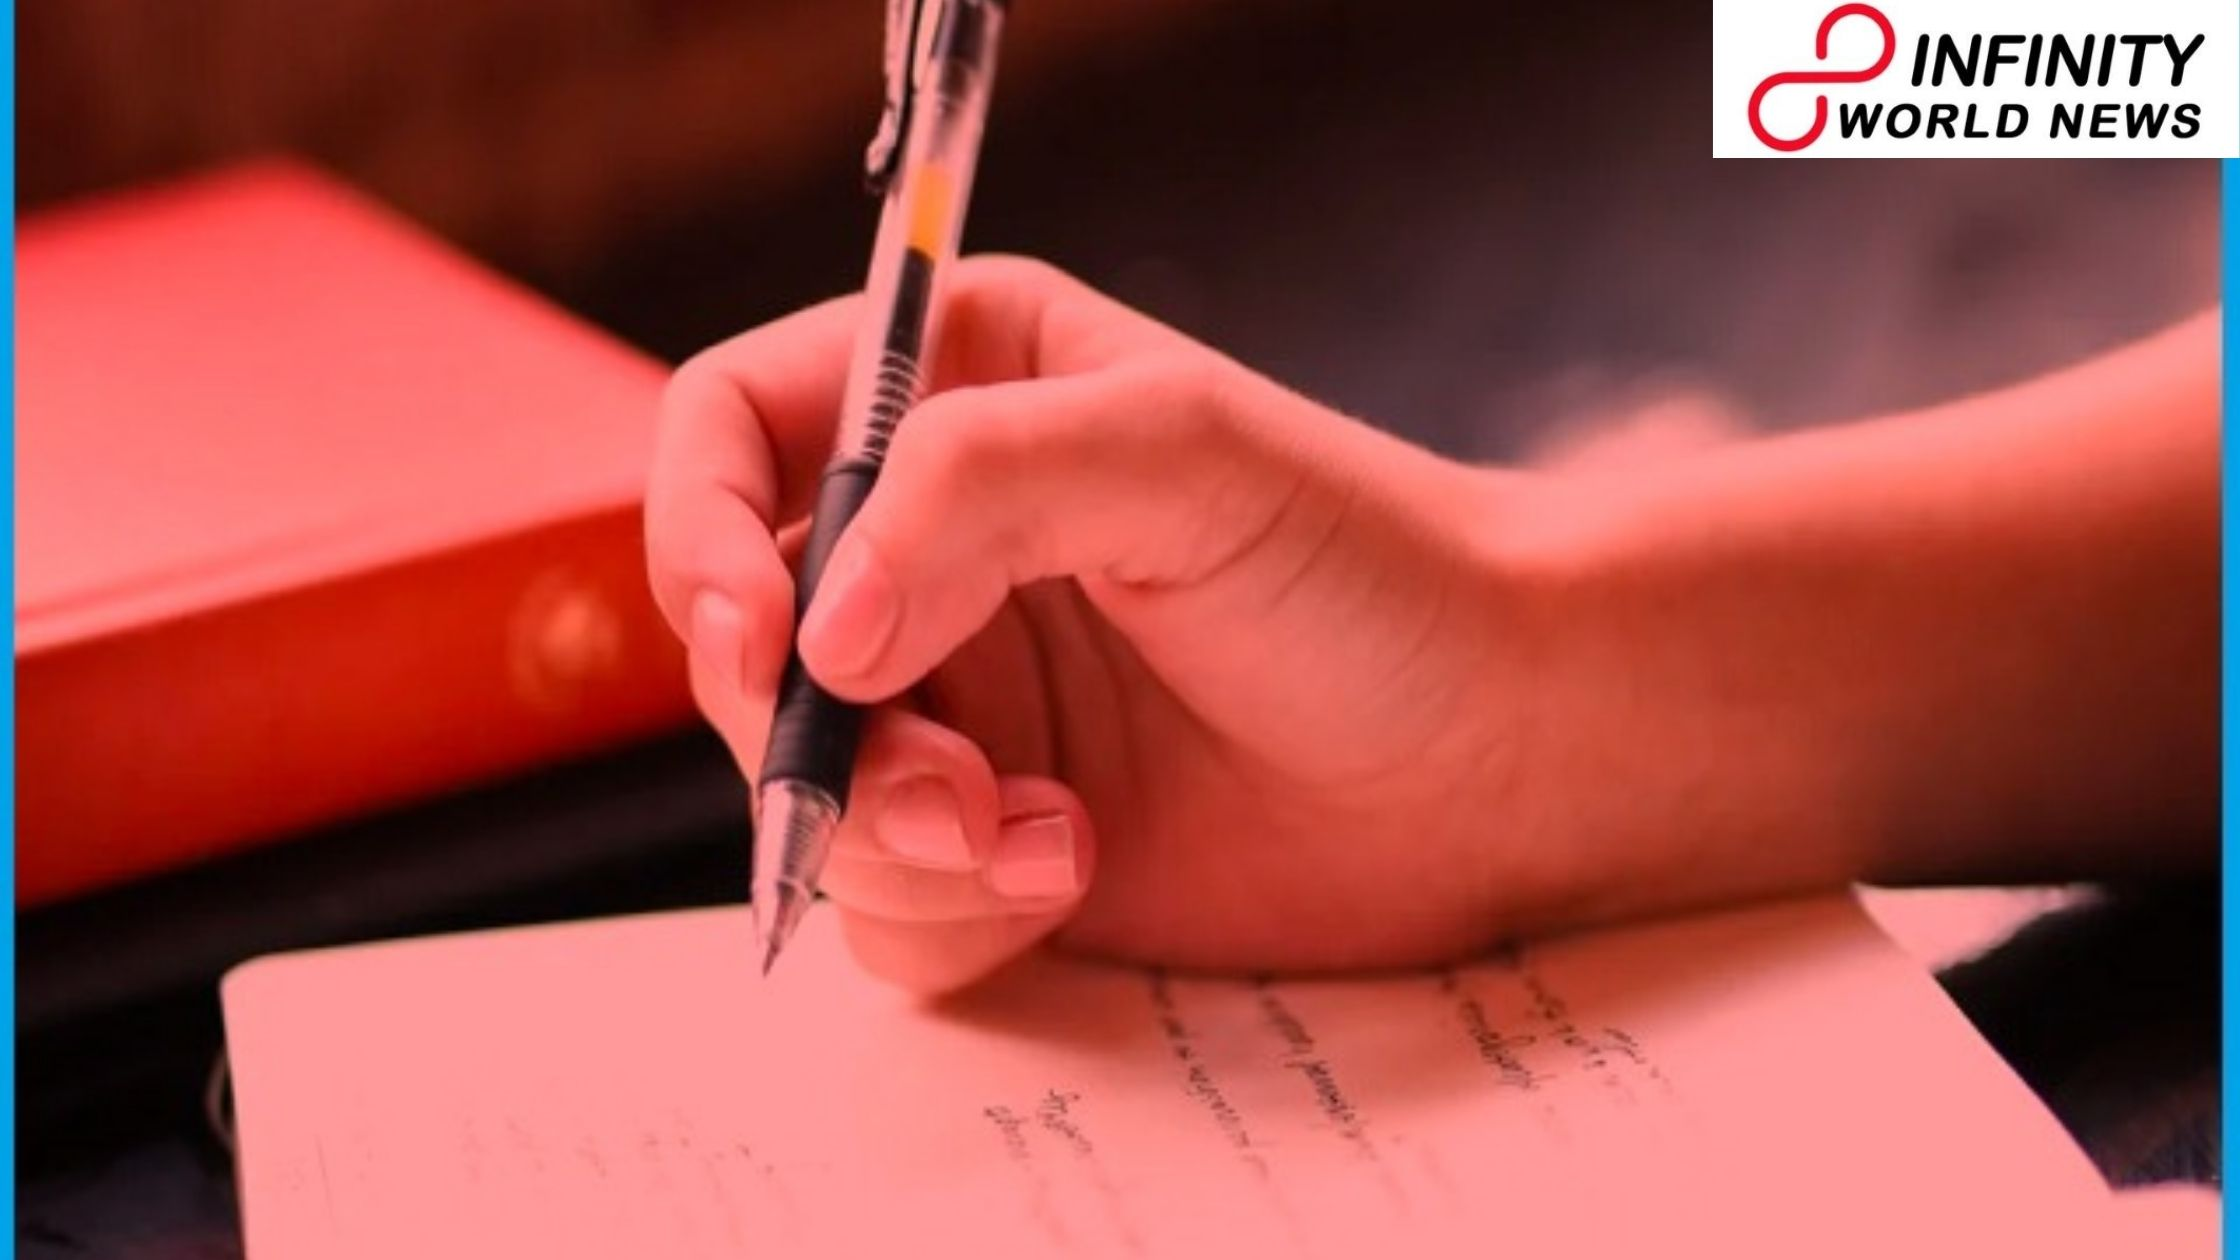 Ten hints to plan for your impending board exams